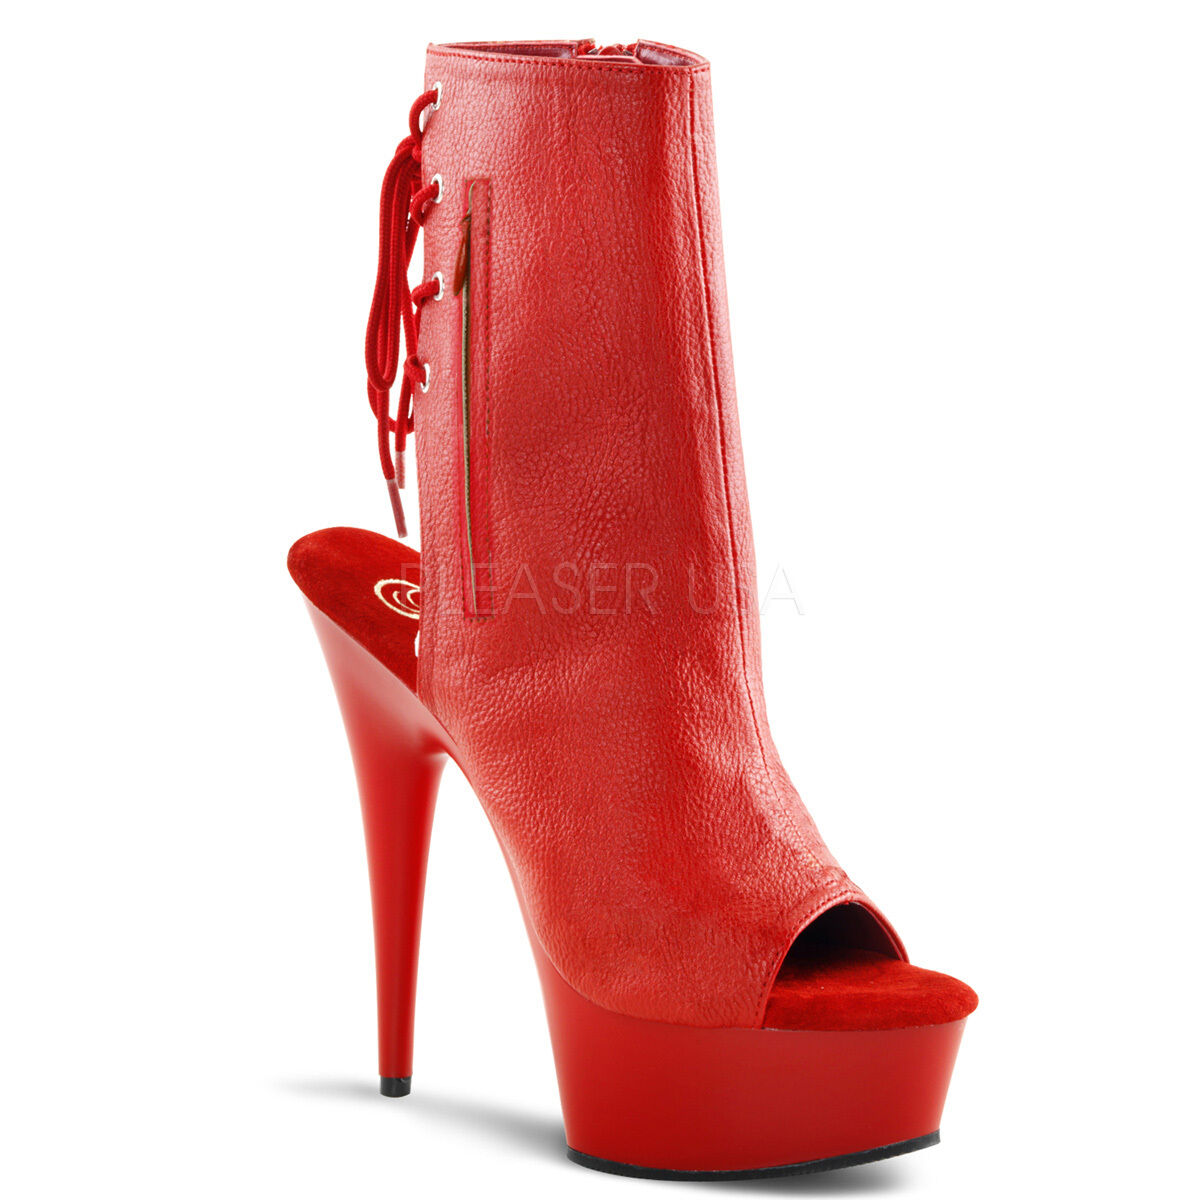 Pleaser DELIGHT-1018 1018ML 1018MMG 1018MS Exotic Dancing Dancing Dancing Platform Ankle Stiefel 8e84c5